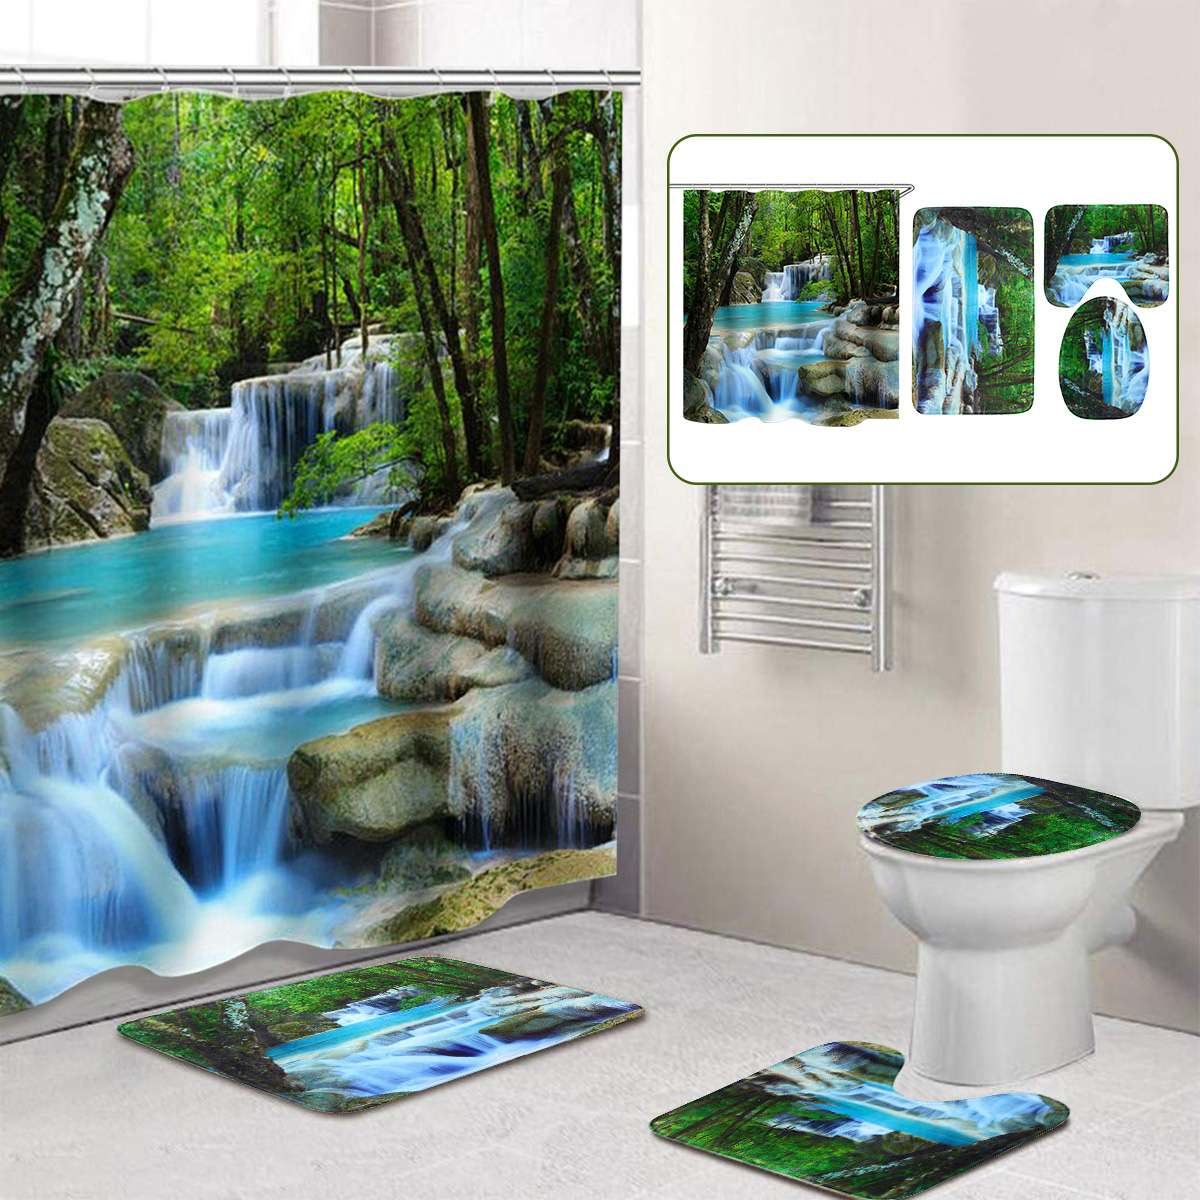 3D Waterfall Scenery Bathroom Curtain Set Made With Repellent Polyester Material For Bathroom Decorate